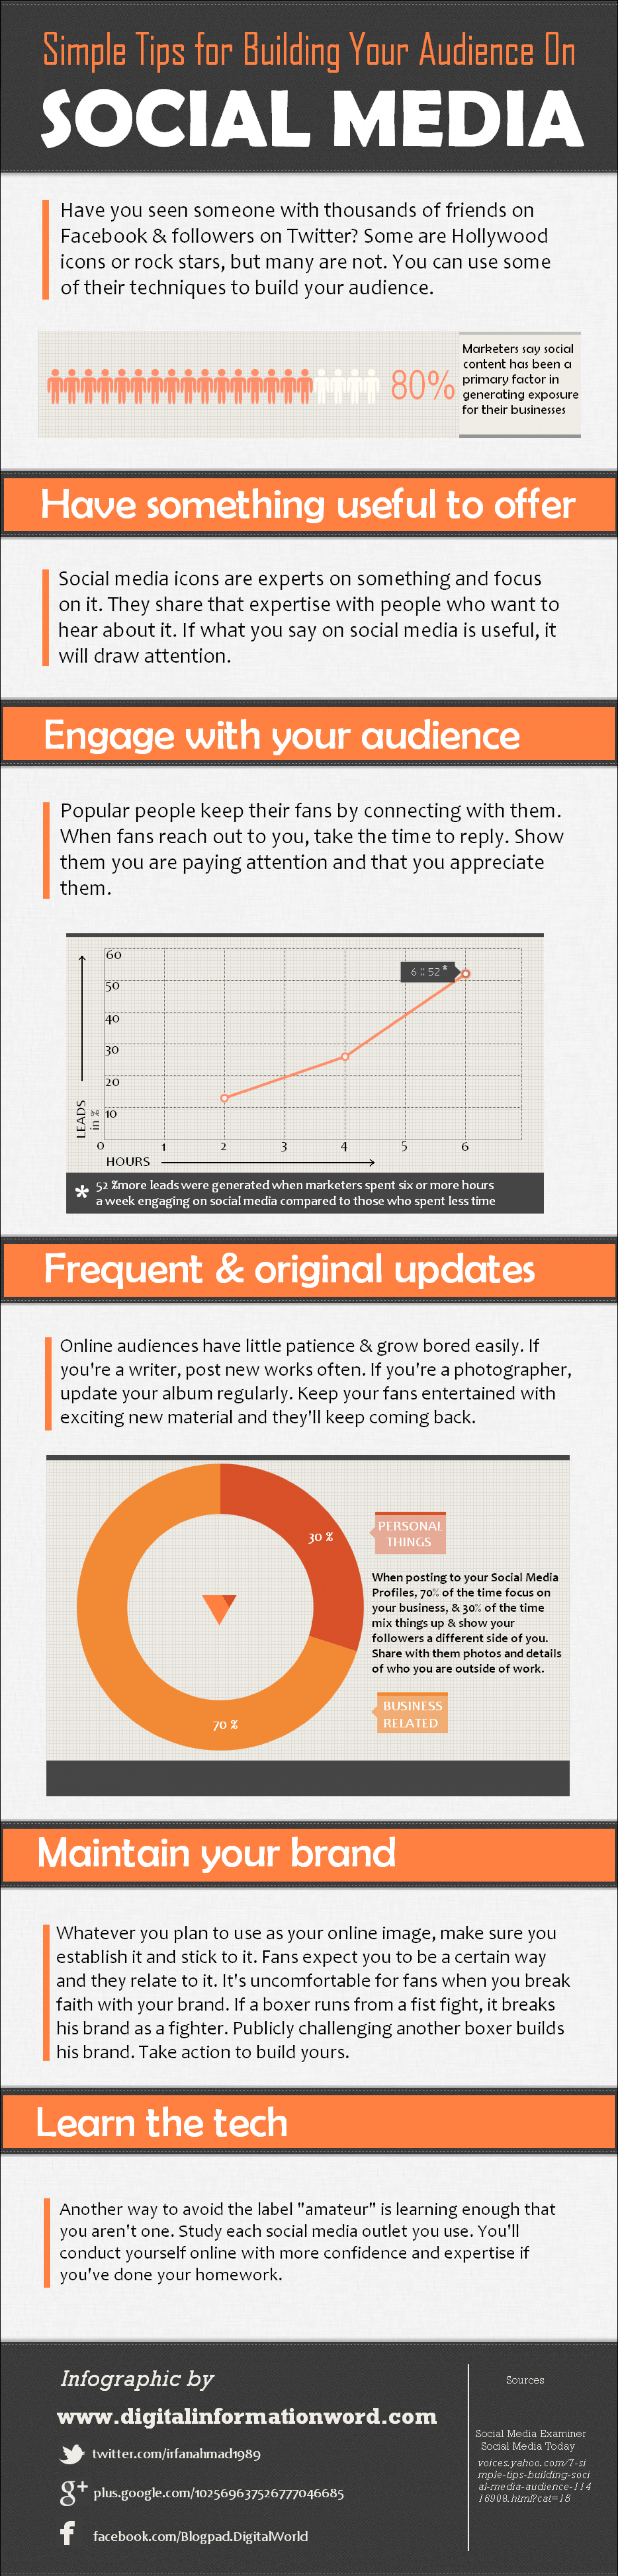 Simple strategies for building audience on social media Infographic